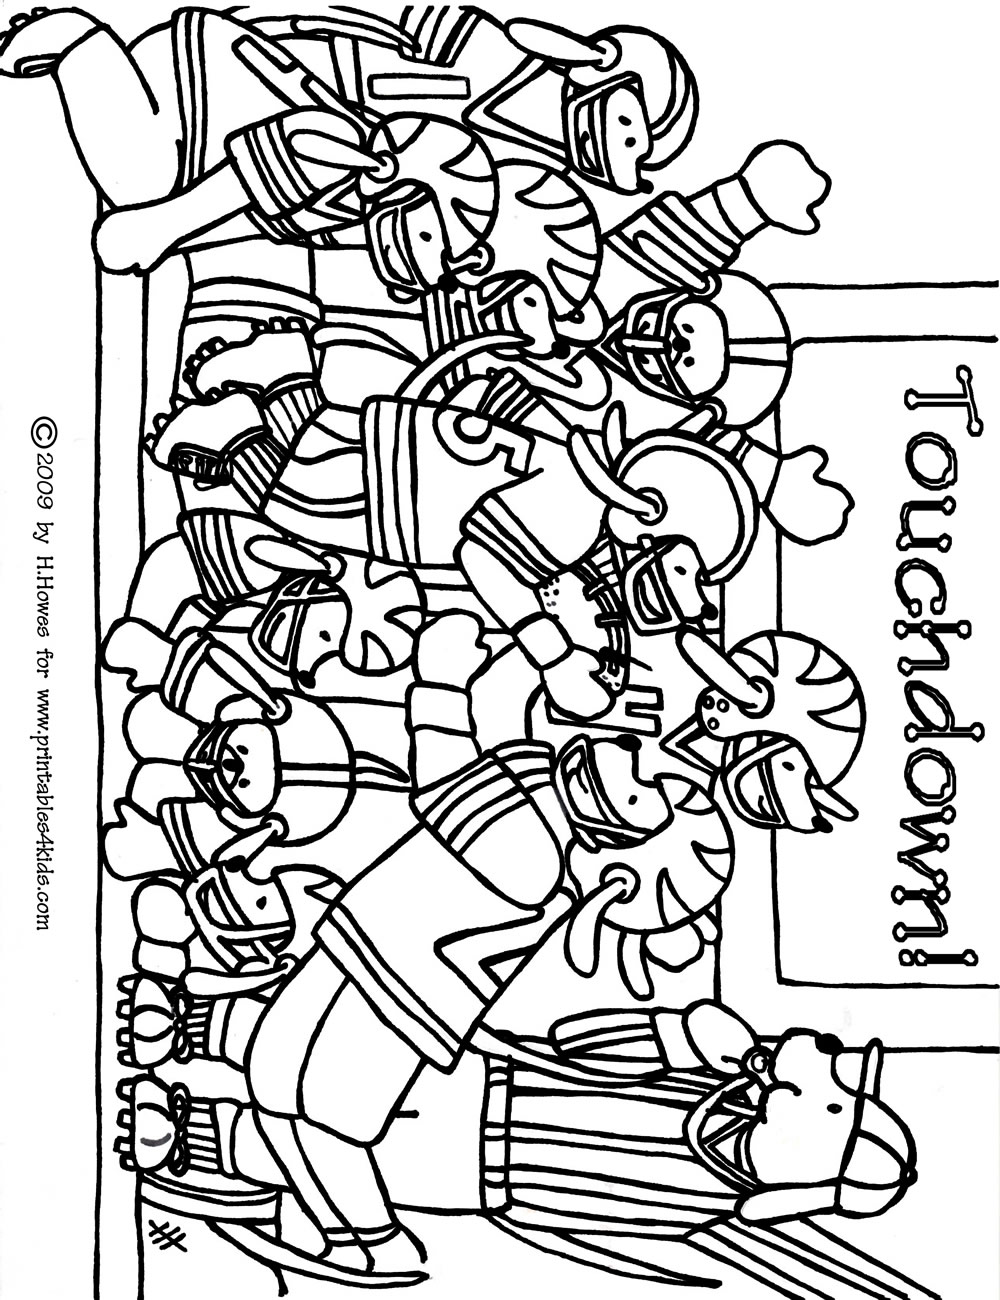 football game coloring page printables for kids free word search puzzles coloring pages and other activities - Football Coloring Page